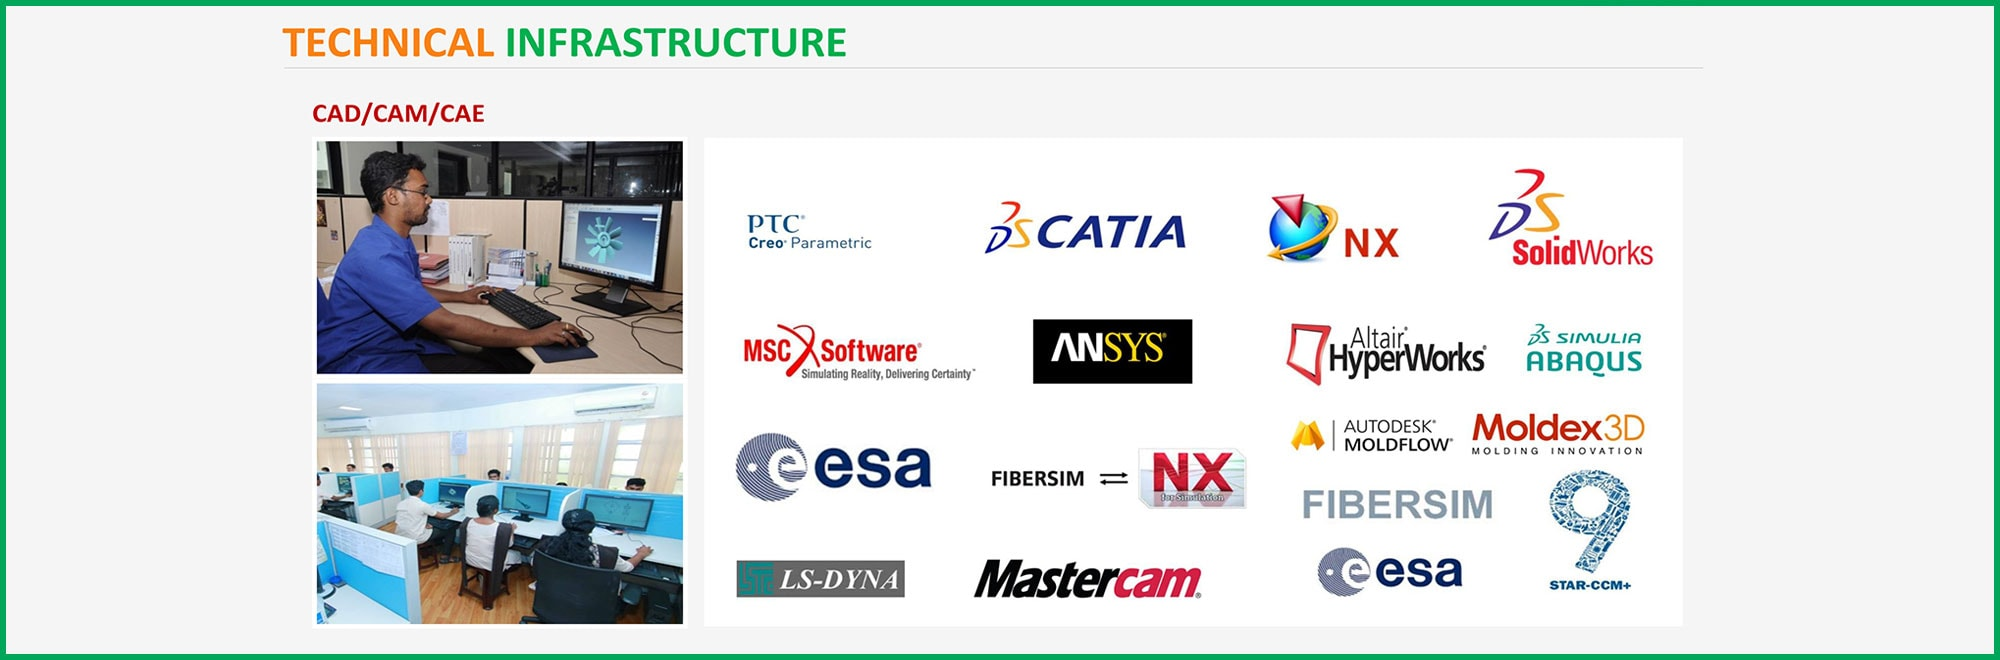 TECHNICAL INFRASTRUCTURE - CAD/CAM/CAE